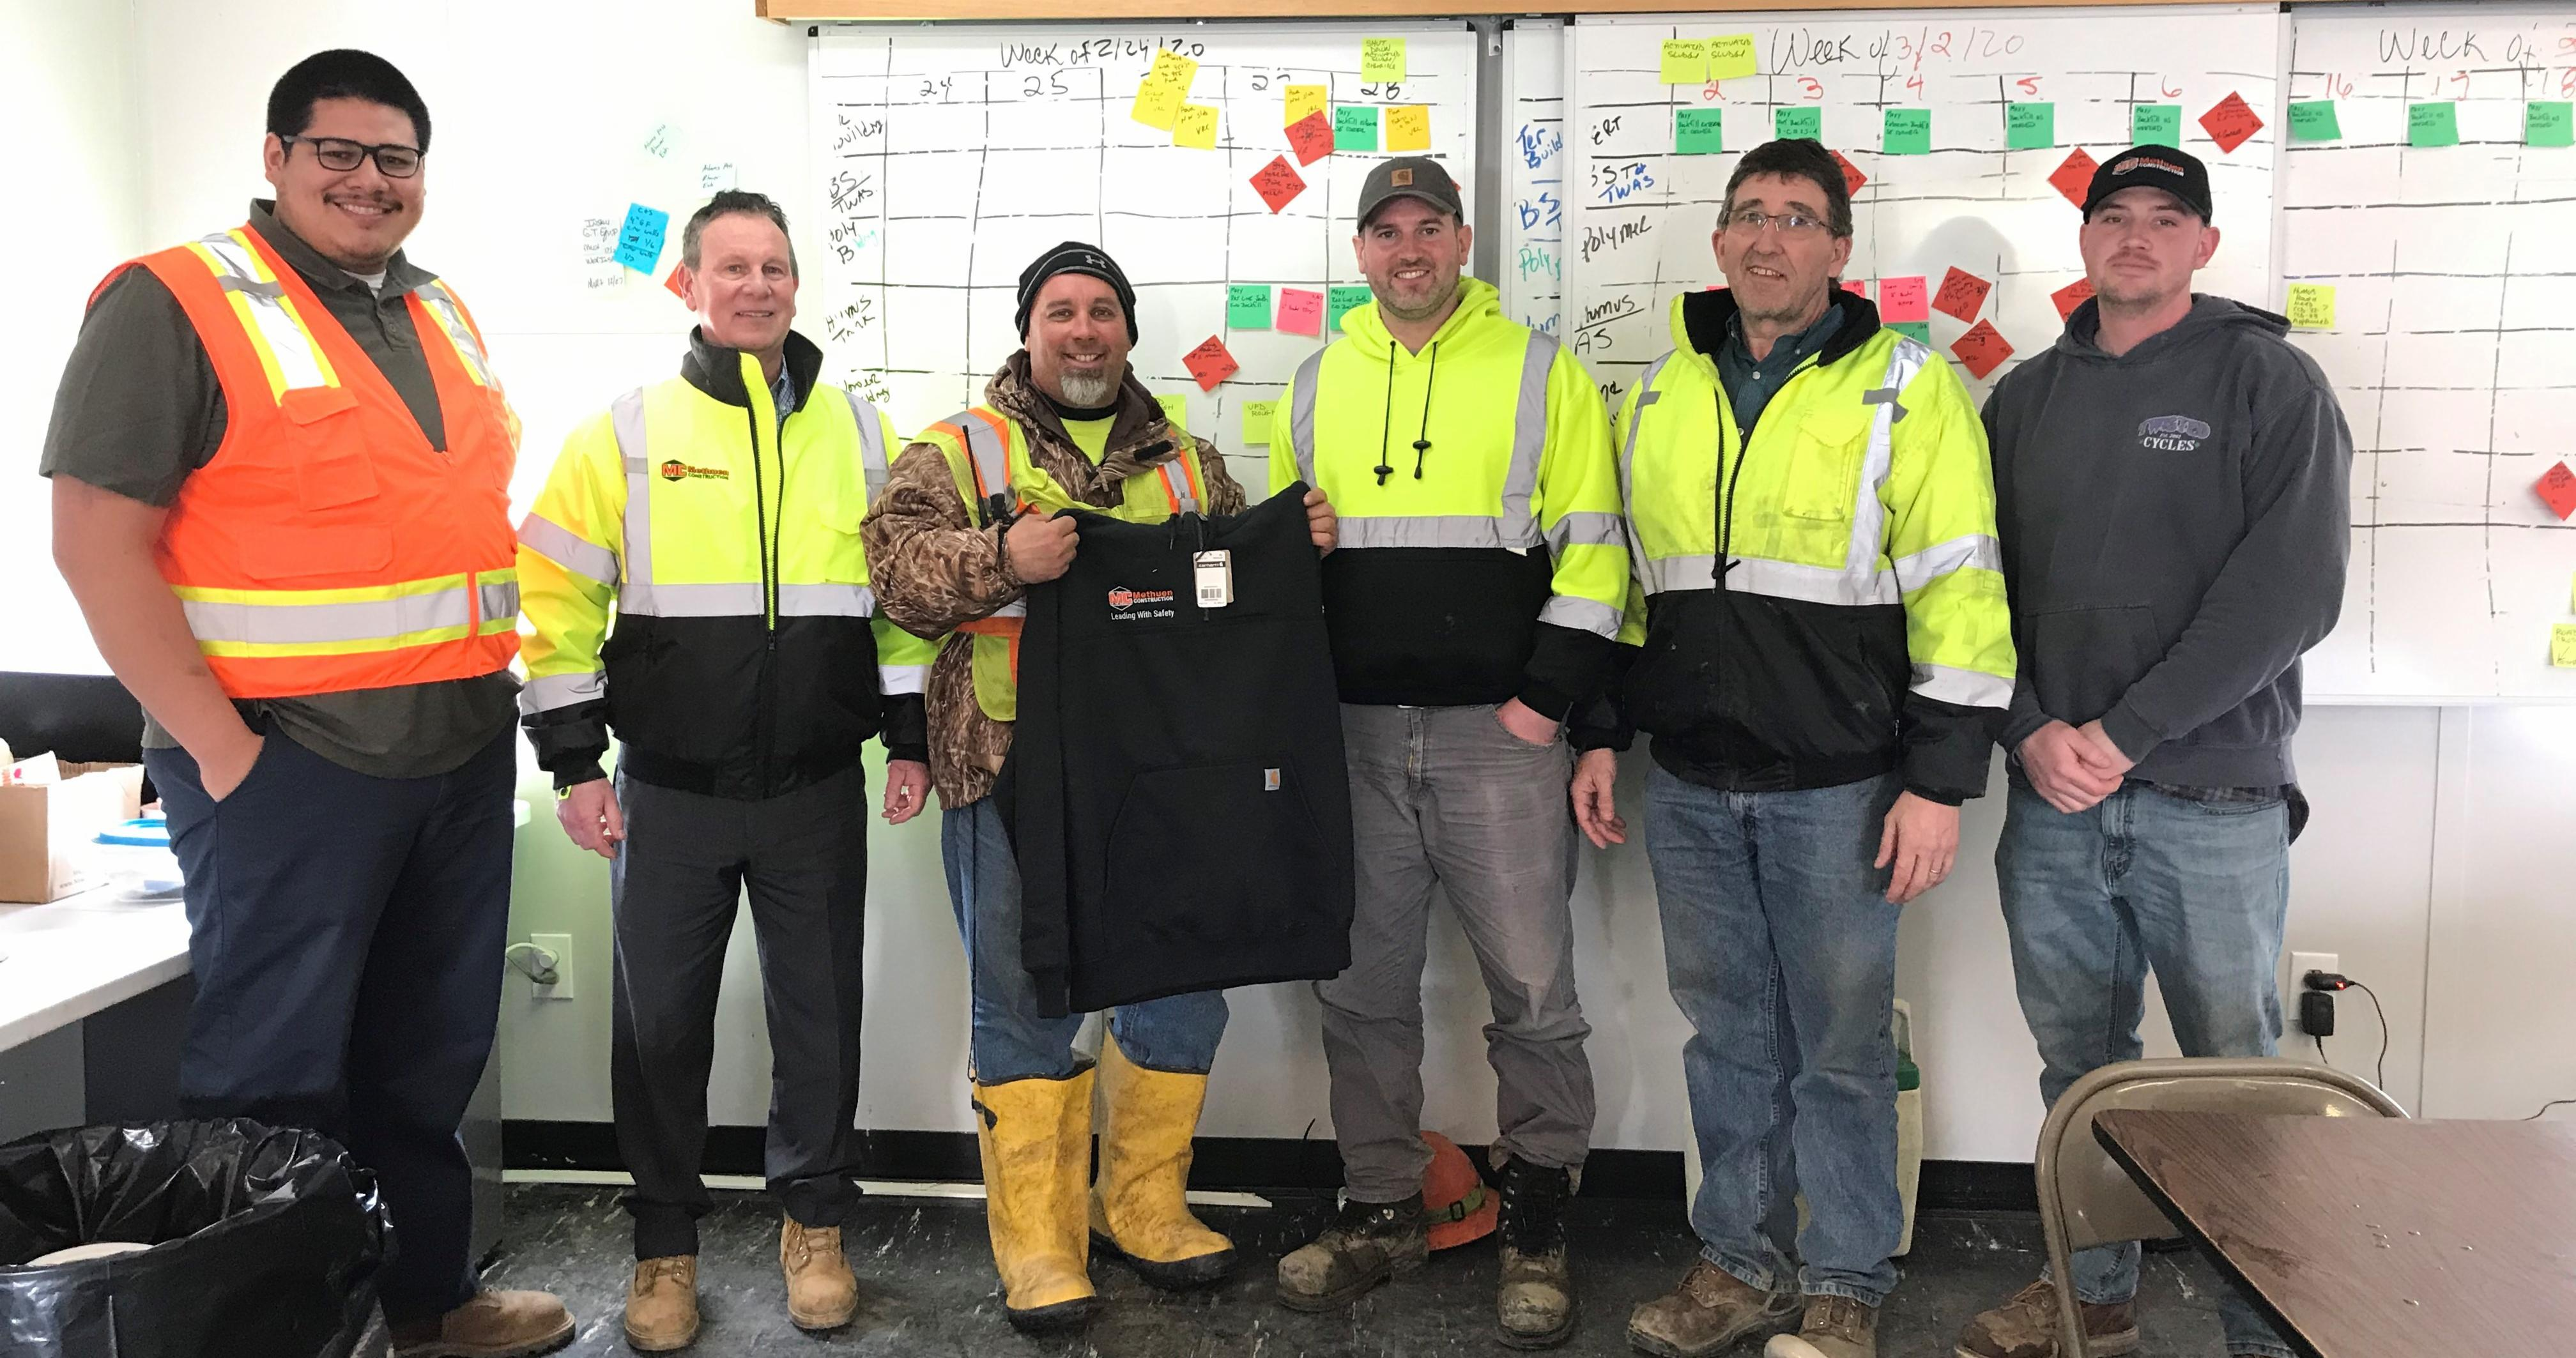 Leading With Safety - Safety Recognition